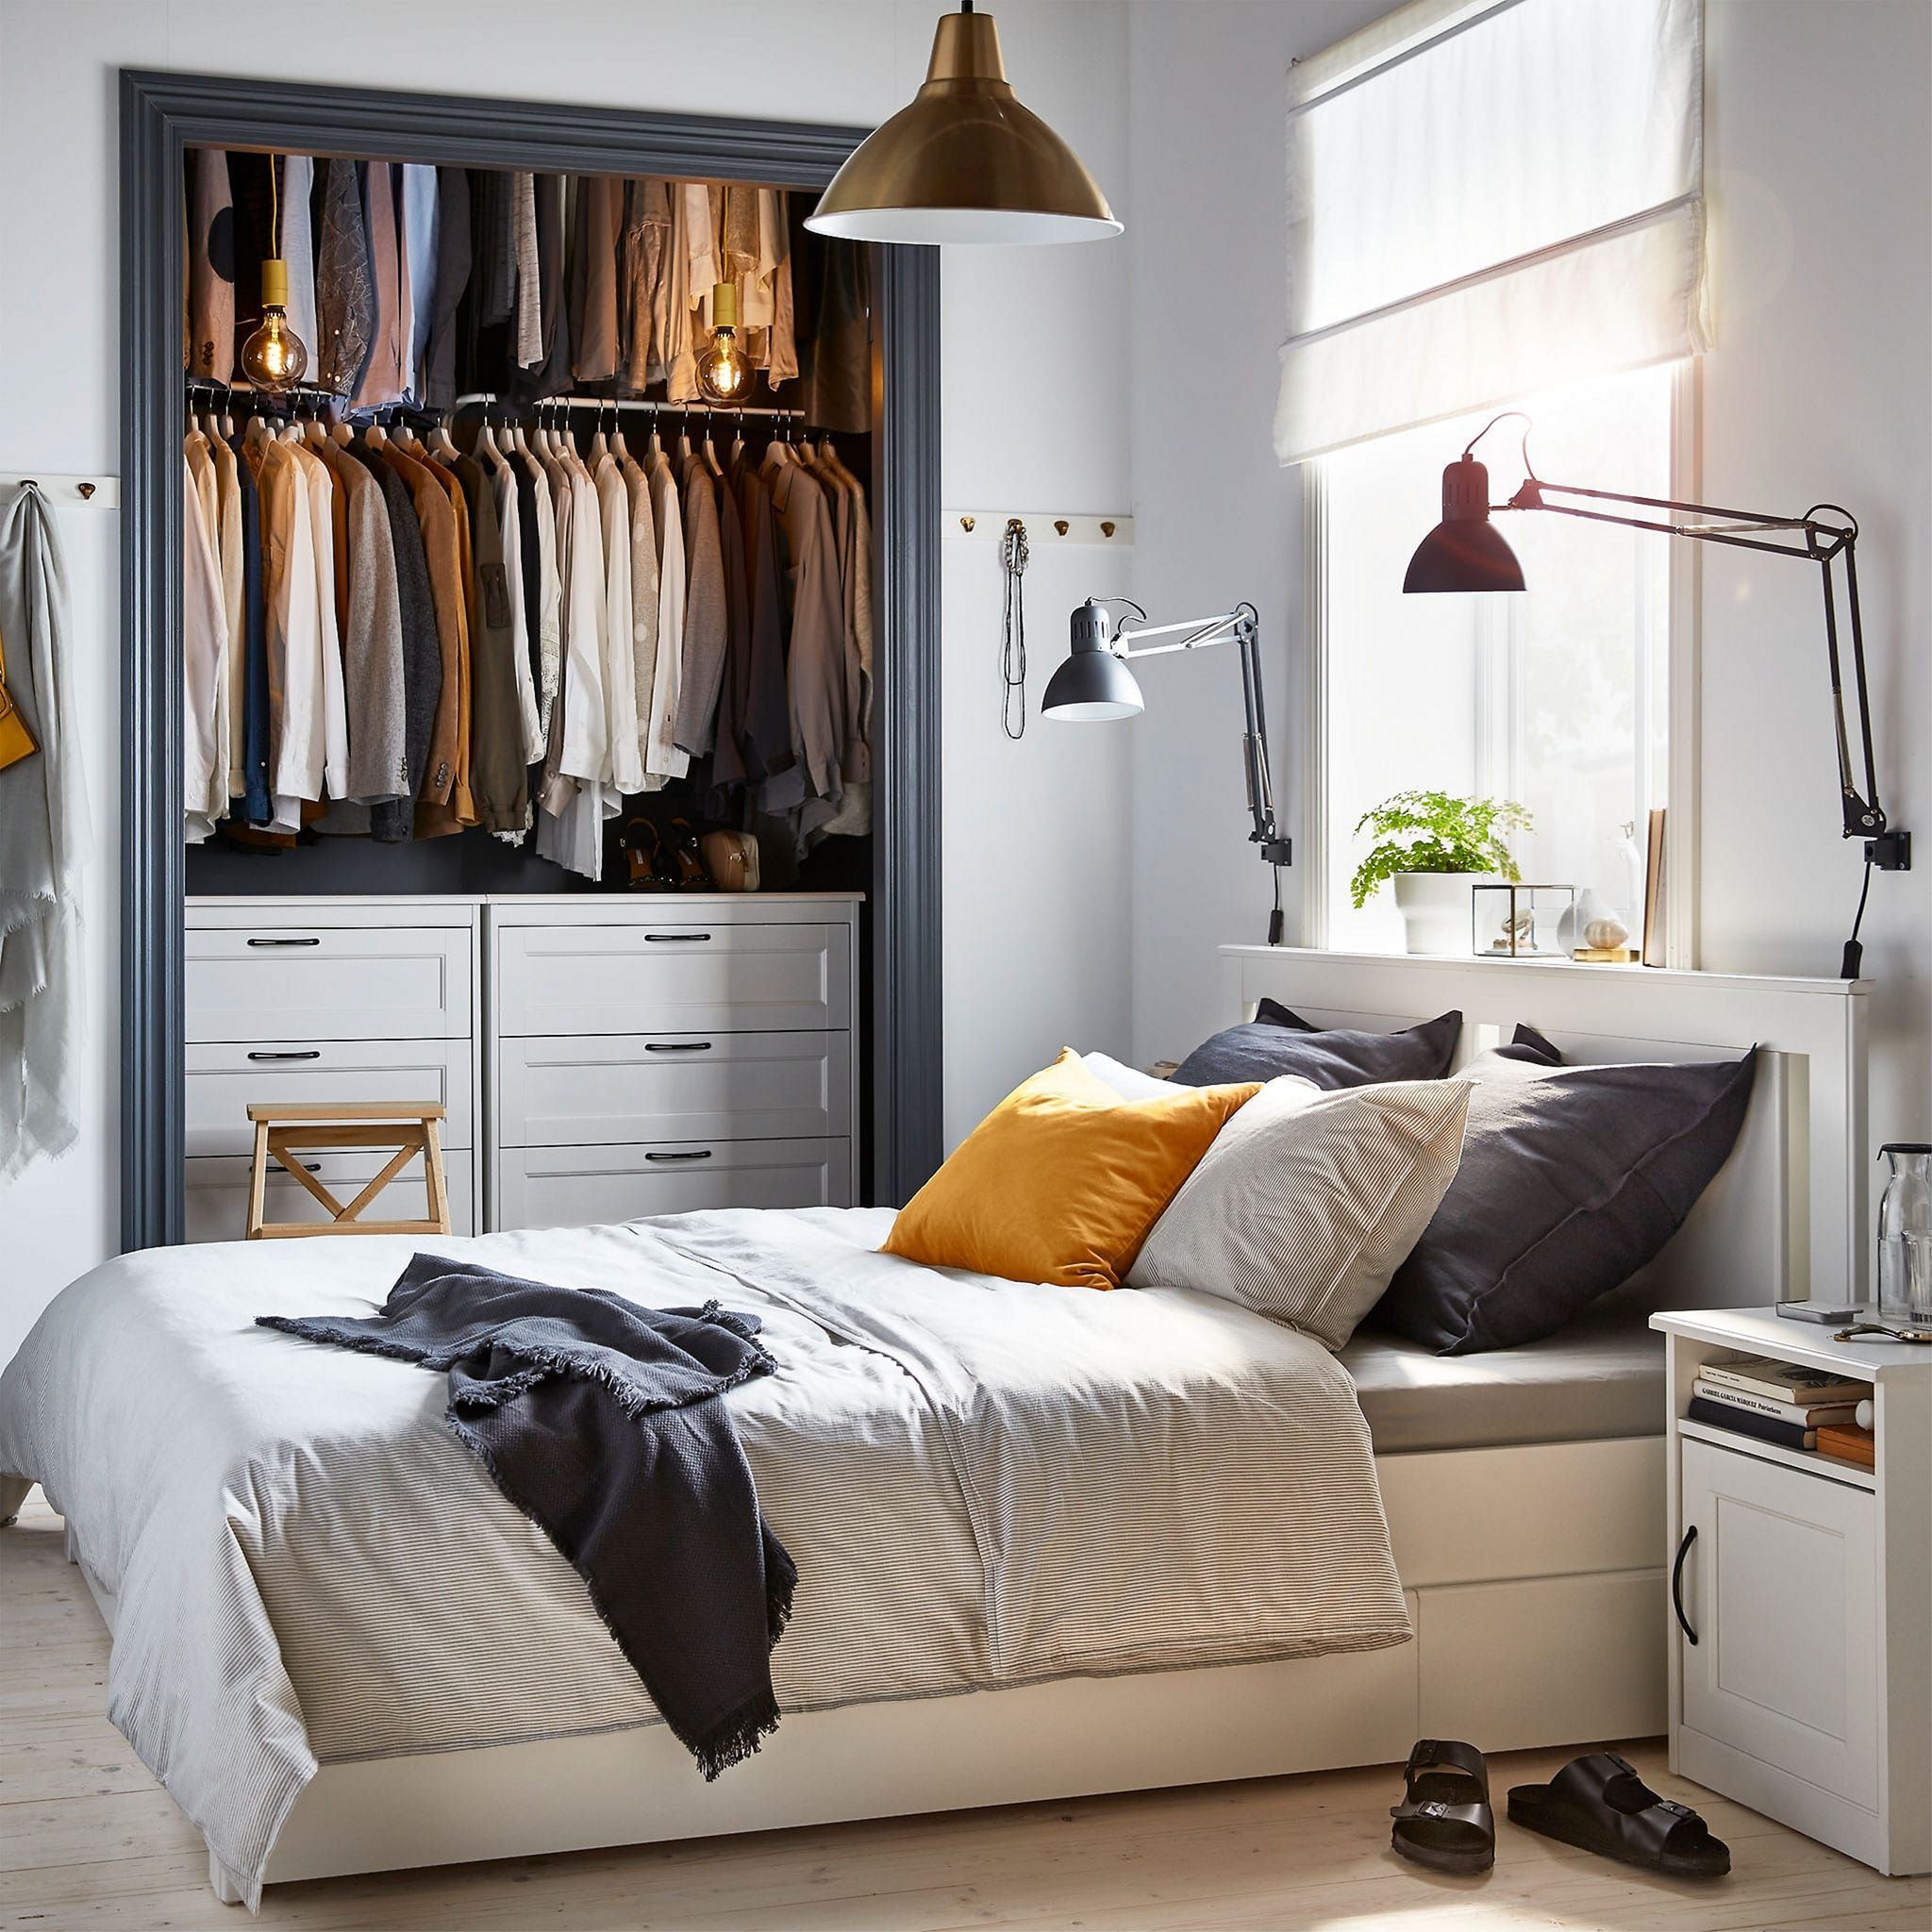 Phenomenal 15 Incredible Small Bedroom Storage Ideas To Organize Your Bedroom To Be Neatly The Ide In 2020 Furniture For Small Spaces Bedroom Storage Bedroom Furniture